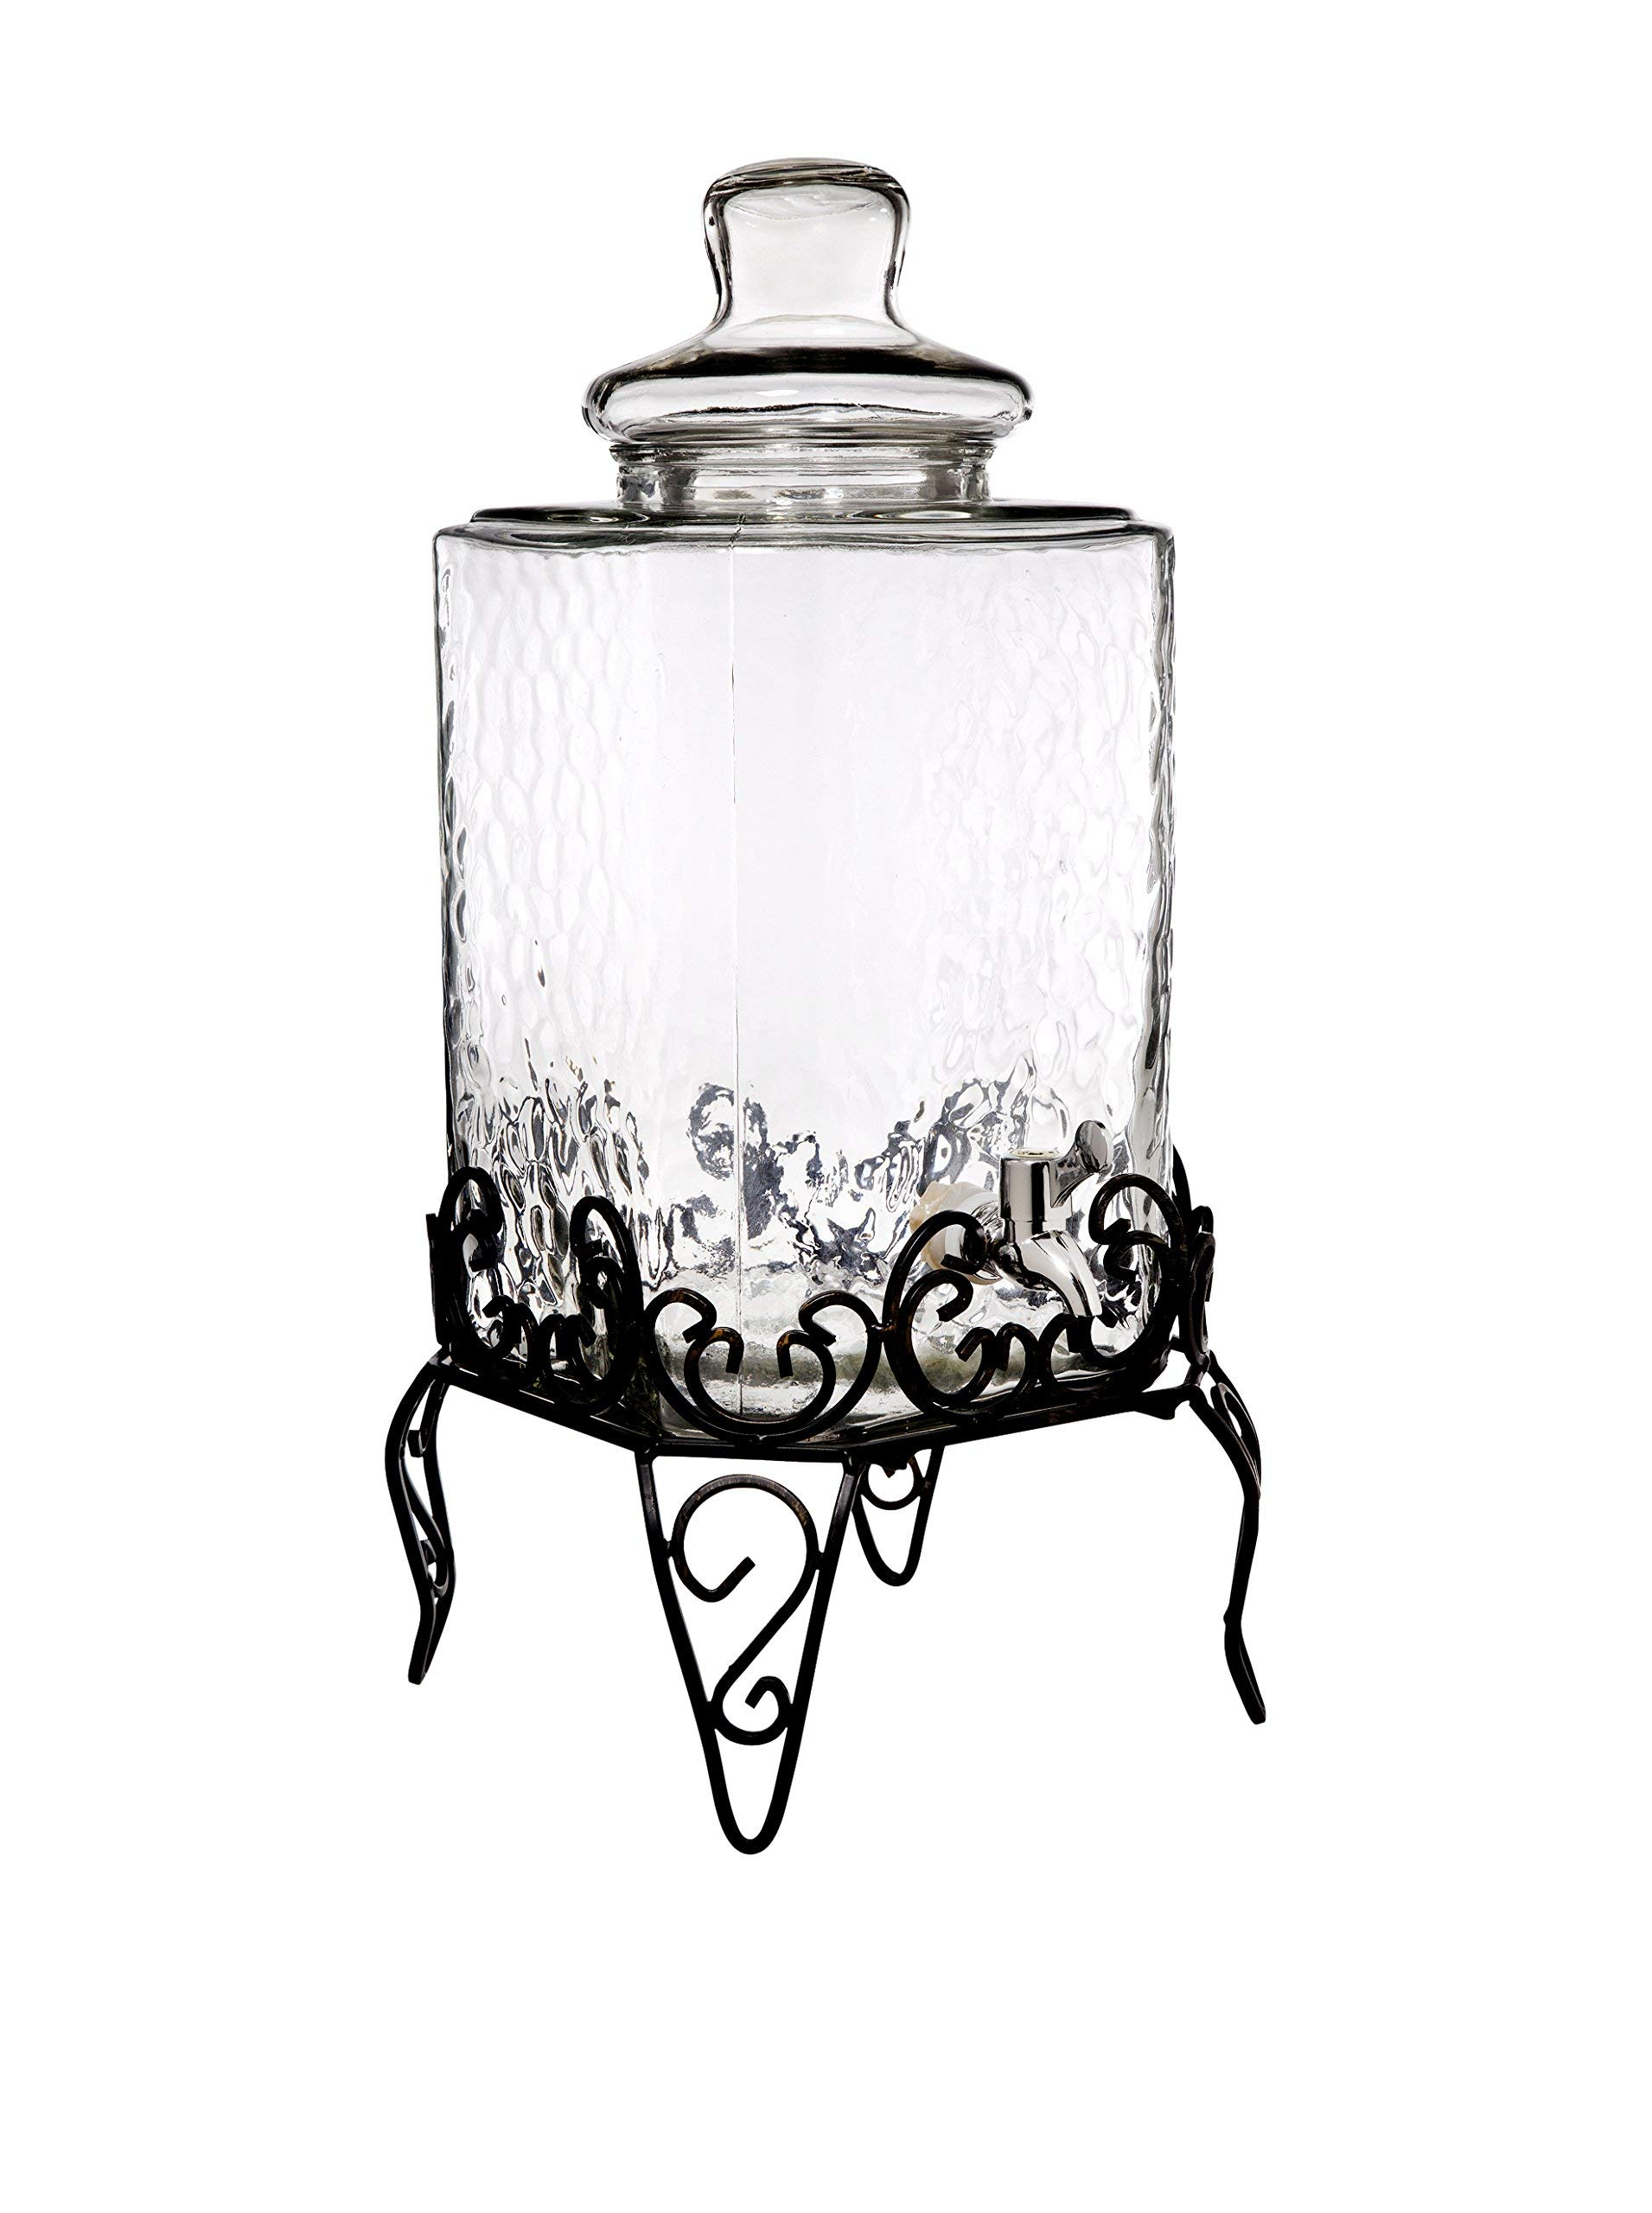 Home Essentials & Beyond 1868 Del Sol Hammered 2.25 gallon Beverage Dispenser with Rack, Clear by Home Essentials & Beyond (Image #1)